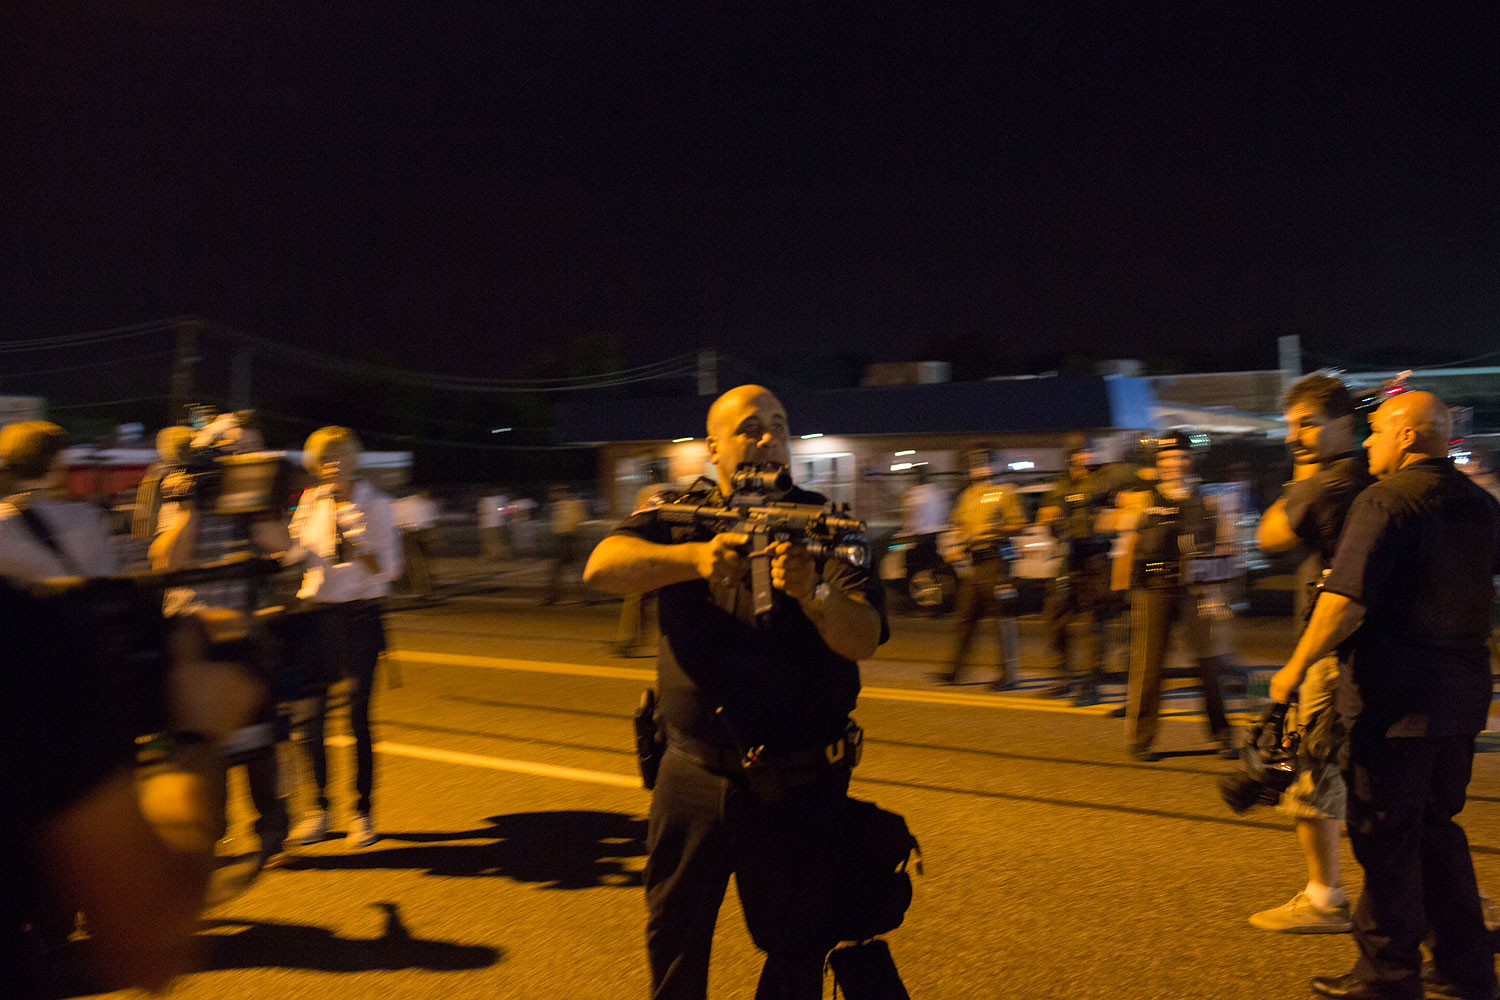 St. Ann, Missouri police officer Lt. Ray Albers points an assault rifle at a protester, Aug. 19, 2014 in Ferguson, Missouri.